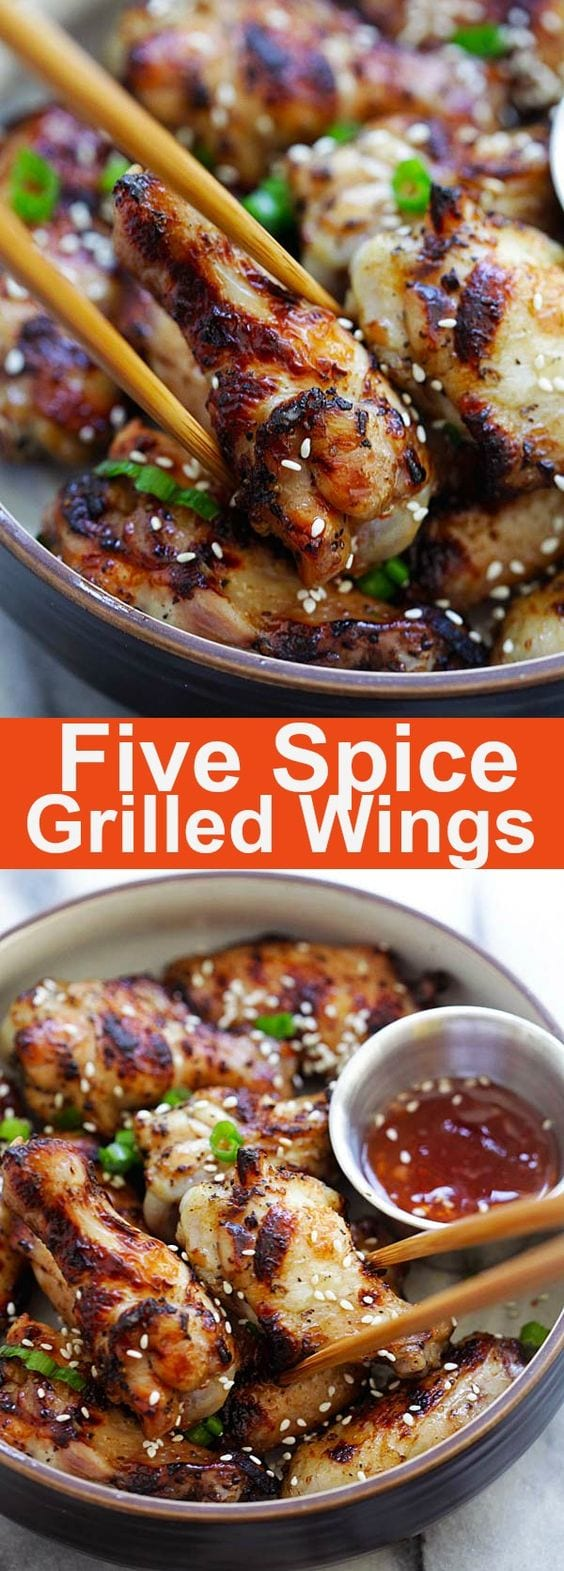 Five Spice Grilled Chicken Wings - moist, juicy and flavorful grilled chicken wings marinated with Chinese five spice powder, garlic and soy sauce | rasamalaysia.com